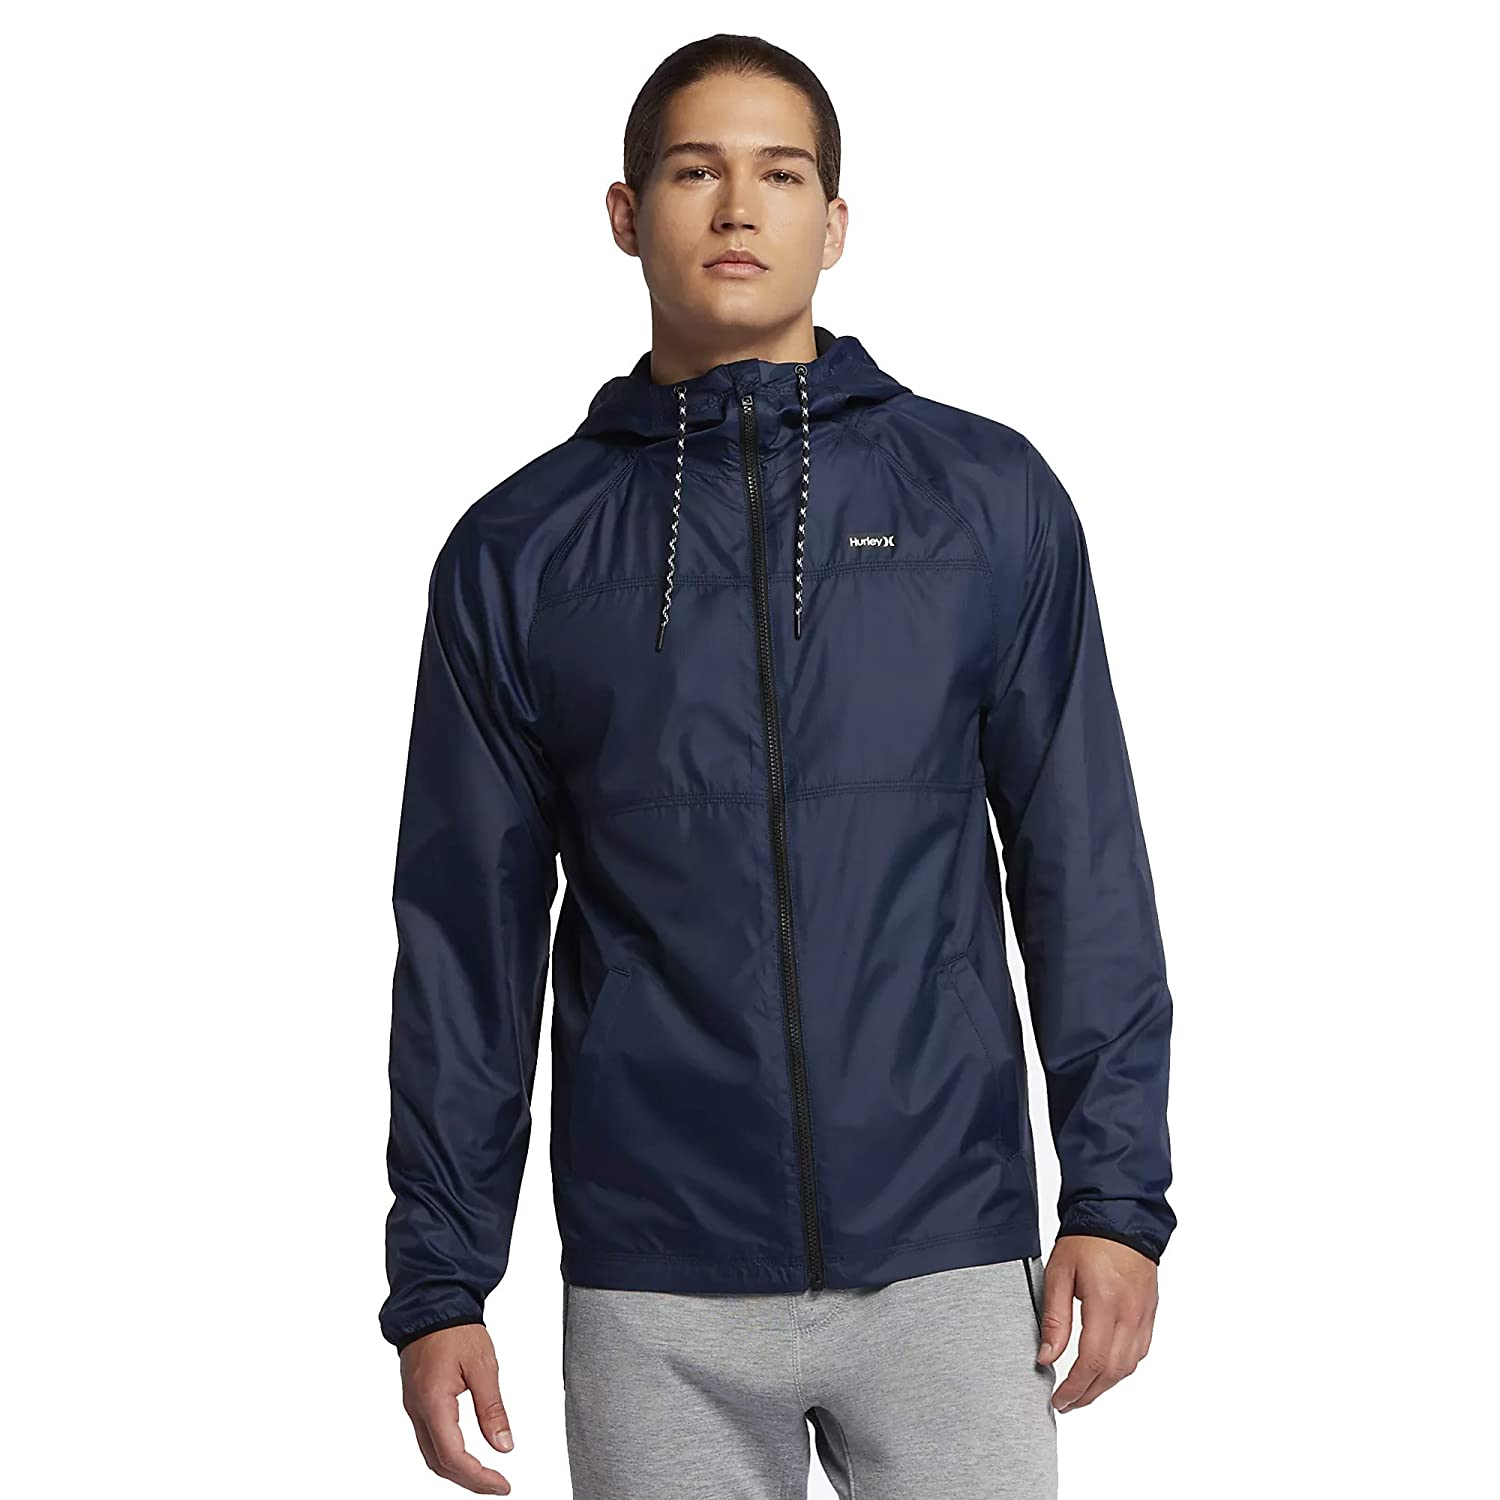 Hurley MJK0002160 Men's Protect Solid Jacket